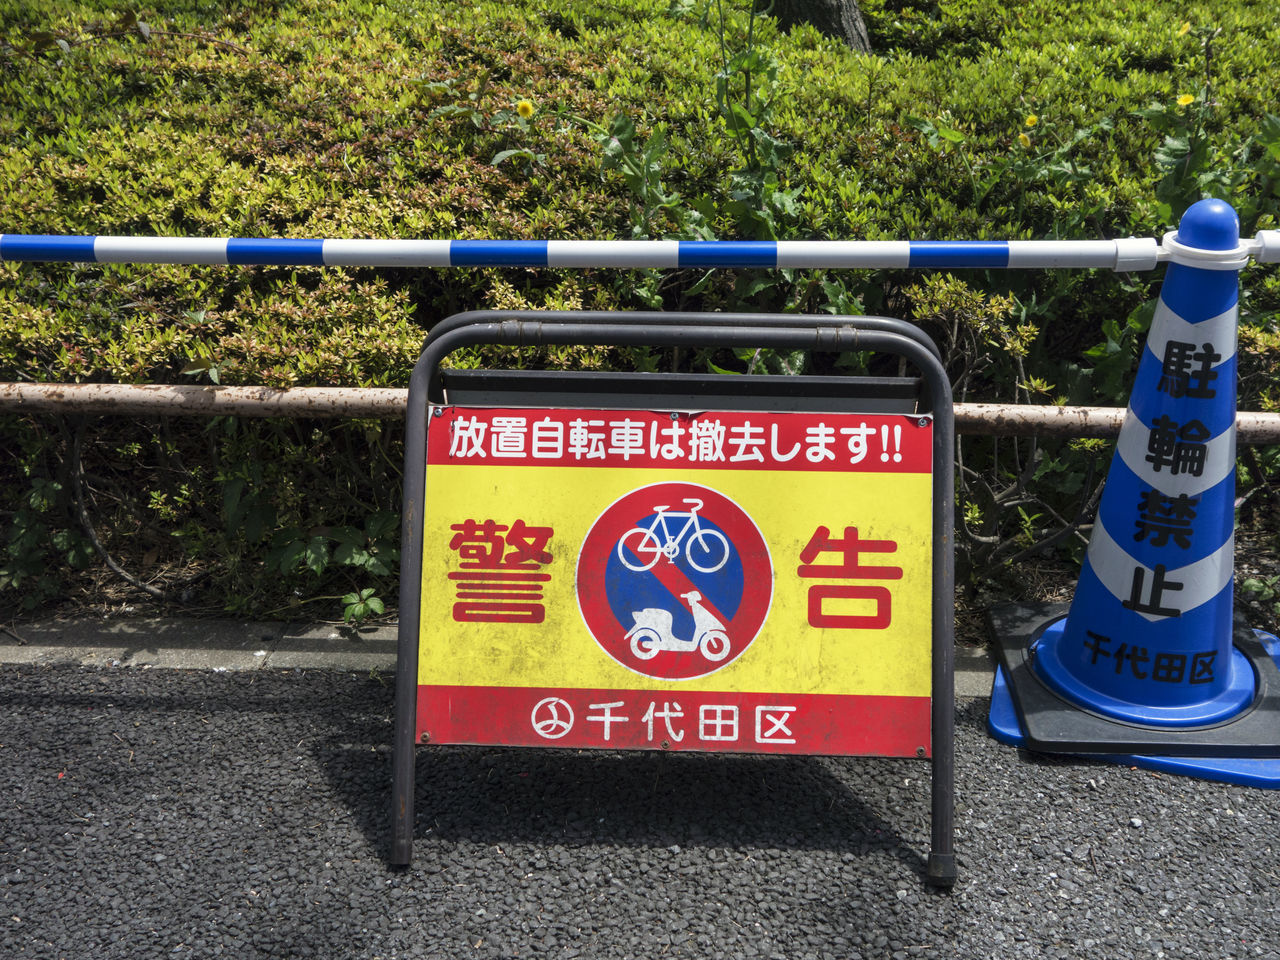 No parking sign in Tokyo, Japan Bicycle Bike Communication Congestion Day Fine Japan Mobility No Parking No Parking Sign No People Outdoors Parking Area Parking Space Prohibited Prohibition Public Order Roller Text Tokyo Traffic Jam